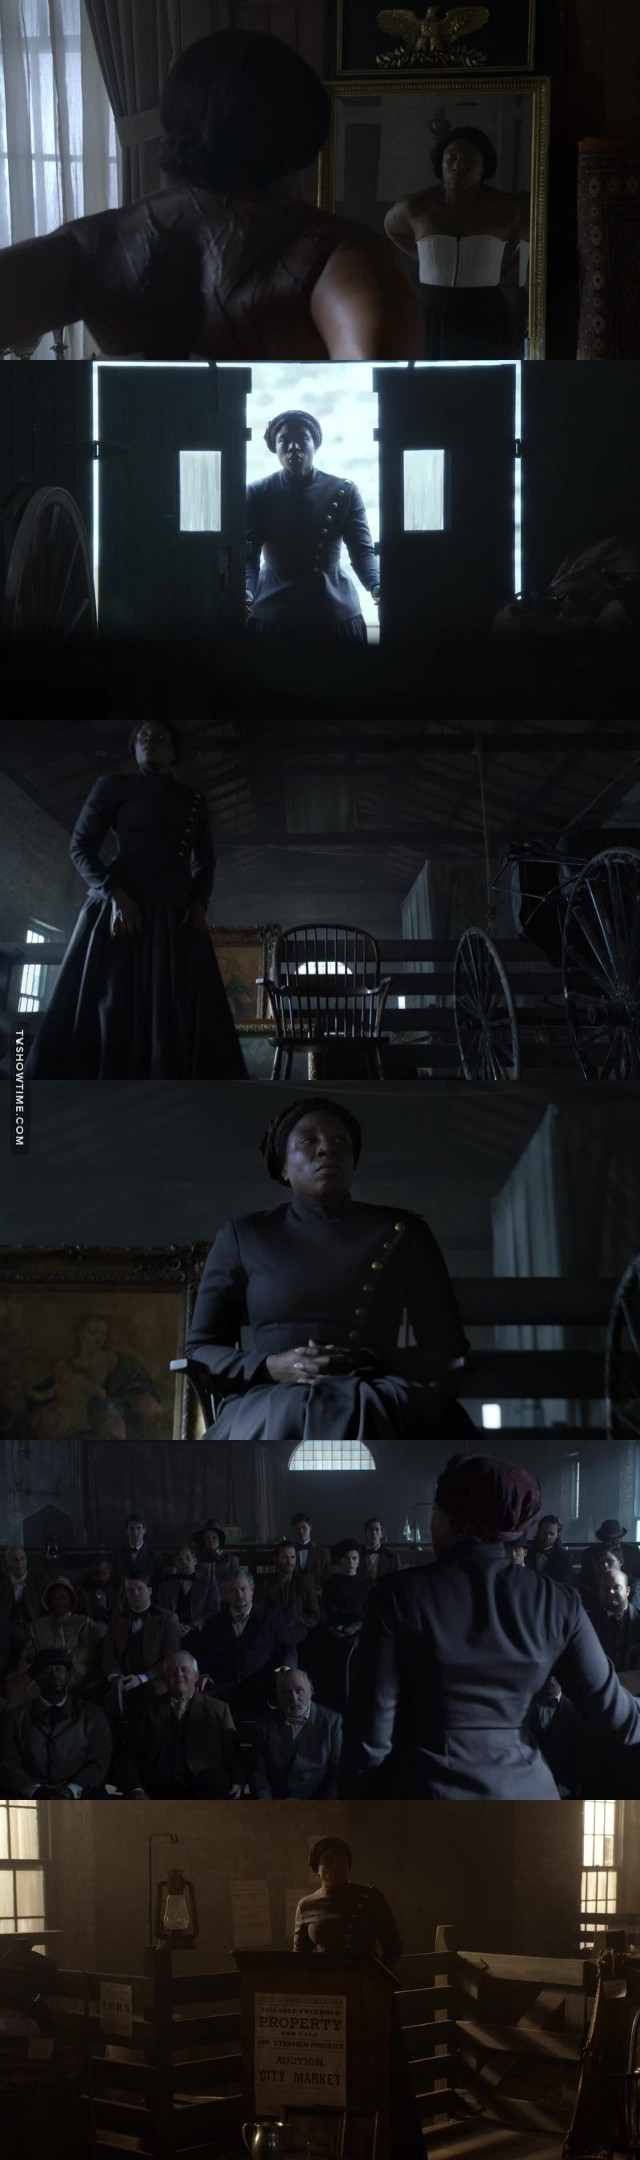 "Aisha Hinds as Harriet Tubman was an excellent casting choice for the role. The reflection on her life experiences in my opinion, makes this one of the best episodes maybe the best of the series so far...definitely top three...these descriptive reflections give you a visual into the past...the sights, sounds, tastes and touch made it feel like you were there with her experiencing those moments. Forever an Icon...one of God's best...one of Society's greatest, Harriet ""Araminta Ross"" Tubman aka ""Moses""."